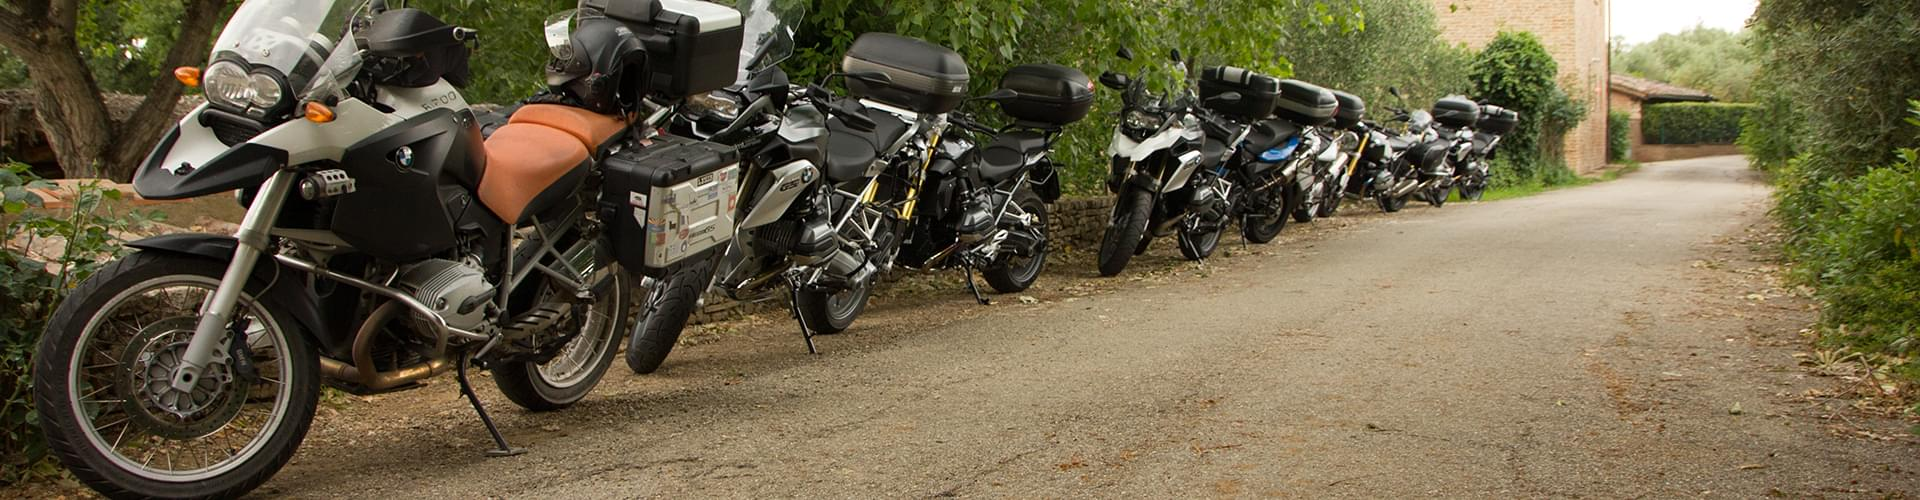 Motorcycles Motorcycle Tours Italy